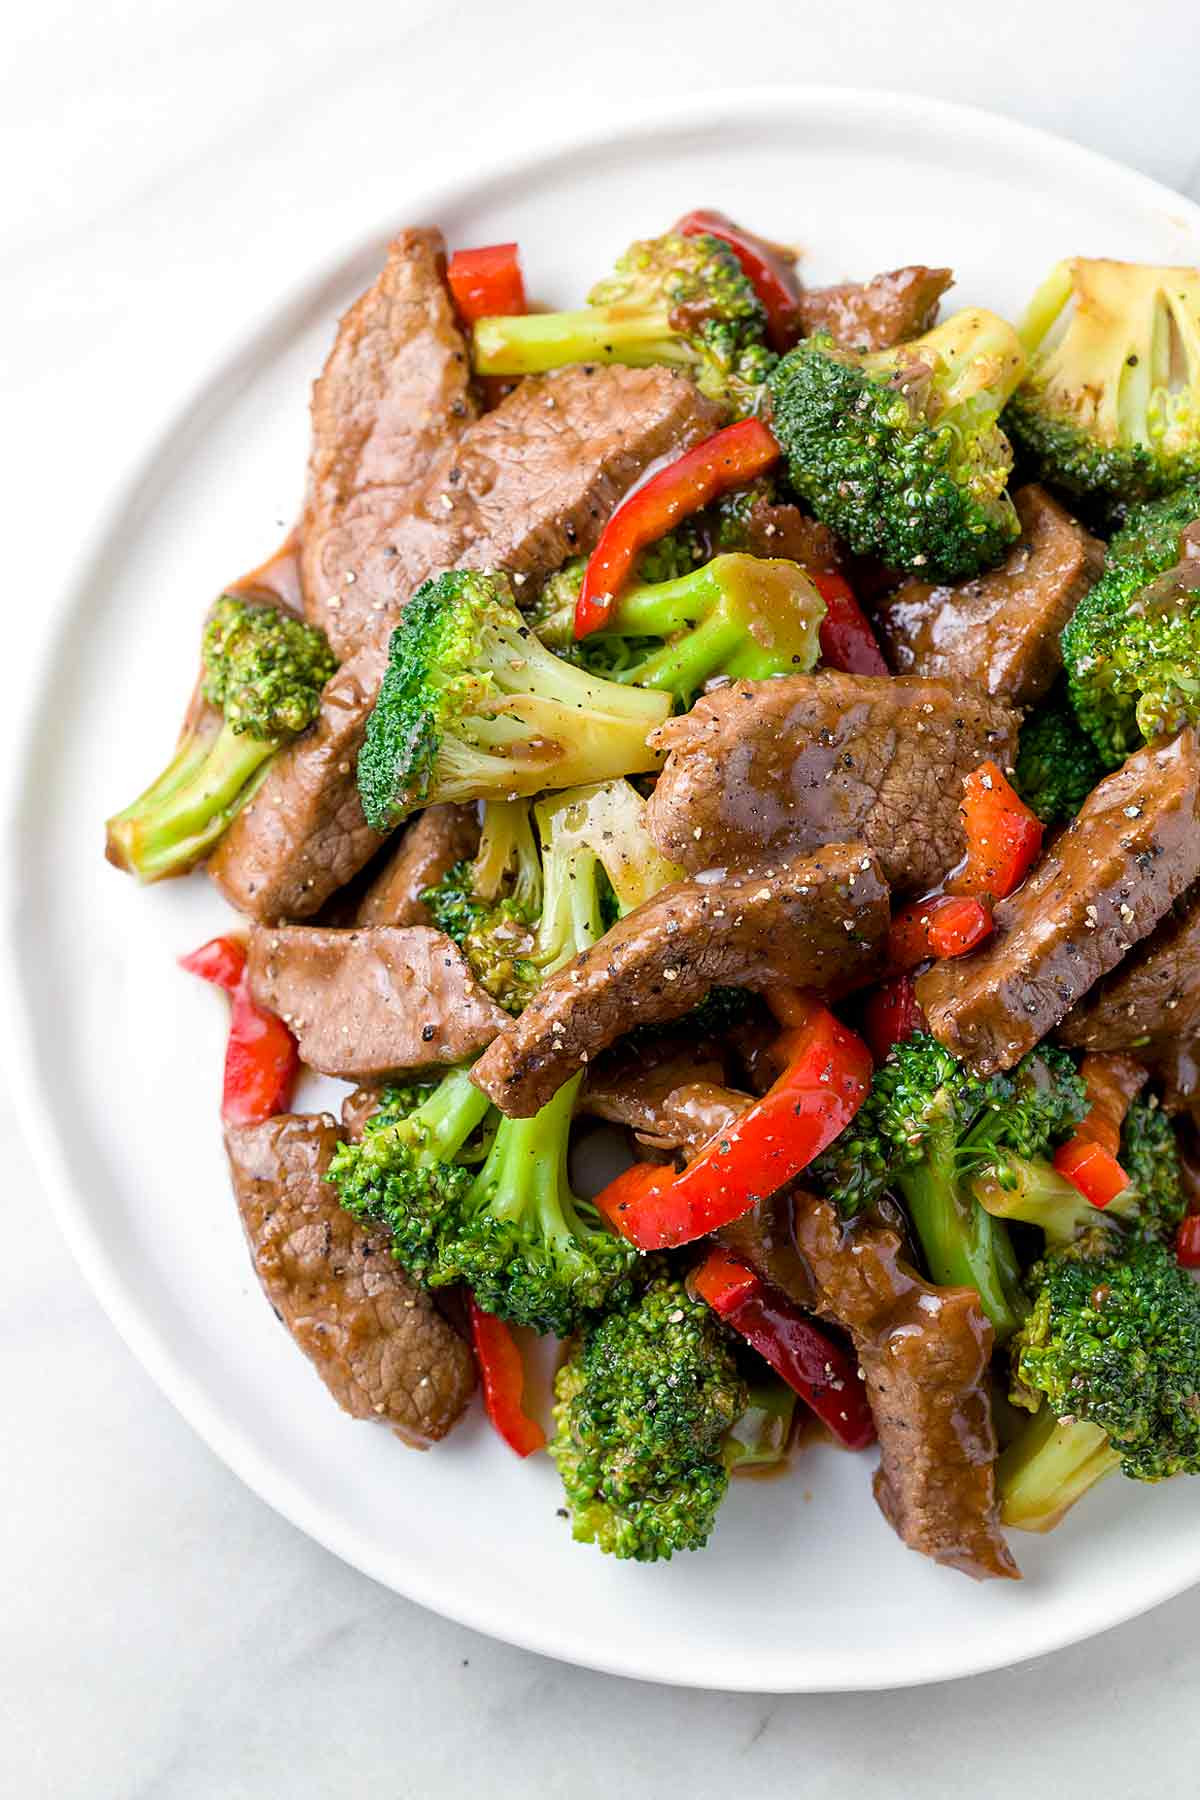 Chinese Stir Fry Recipes  Chinese Beef with Broccoli Stir Fry Recipe Jessica Gavin